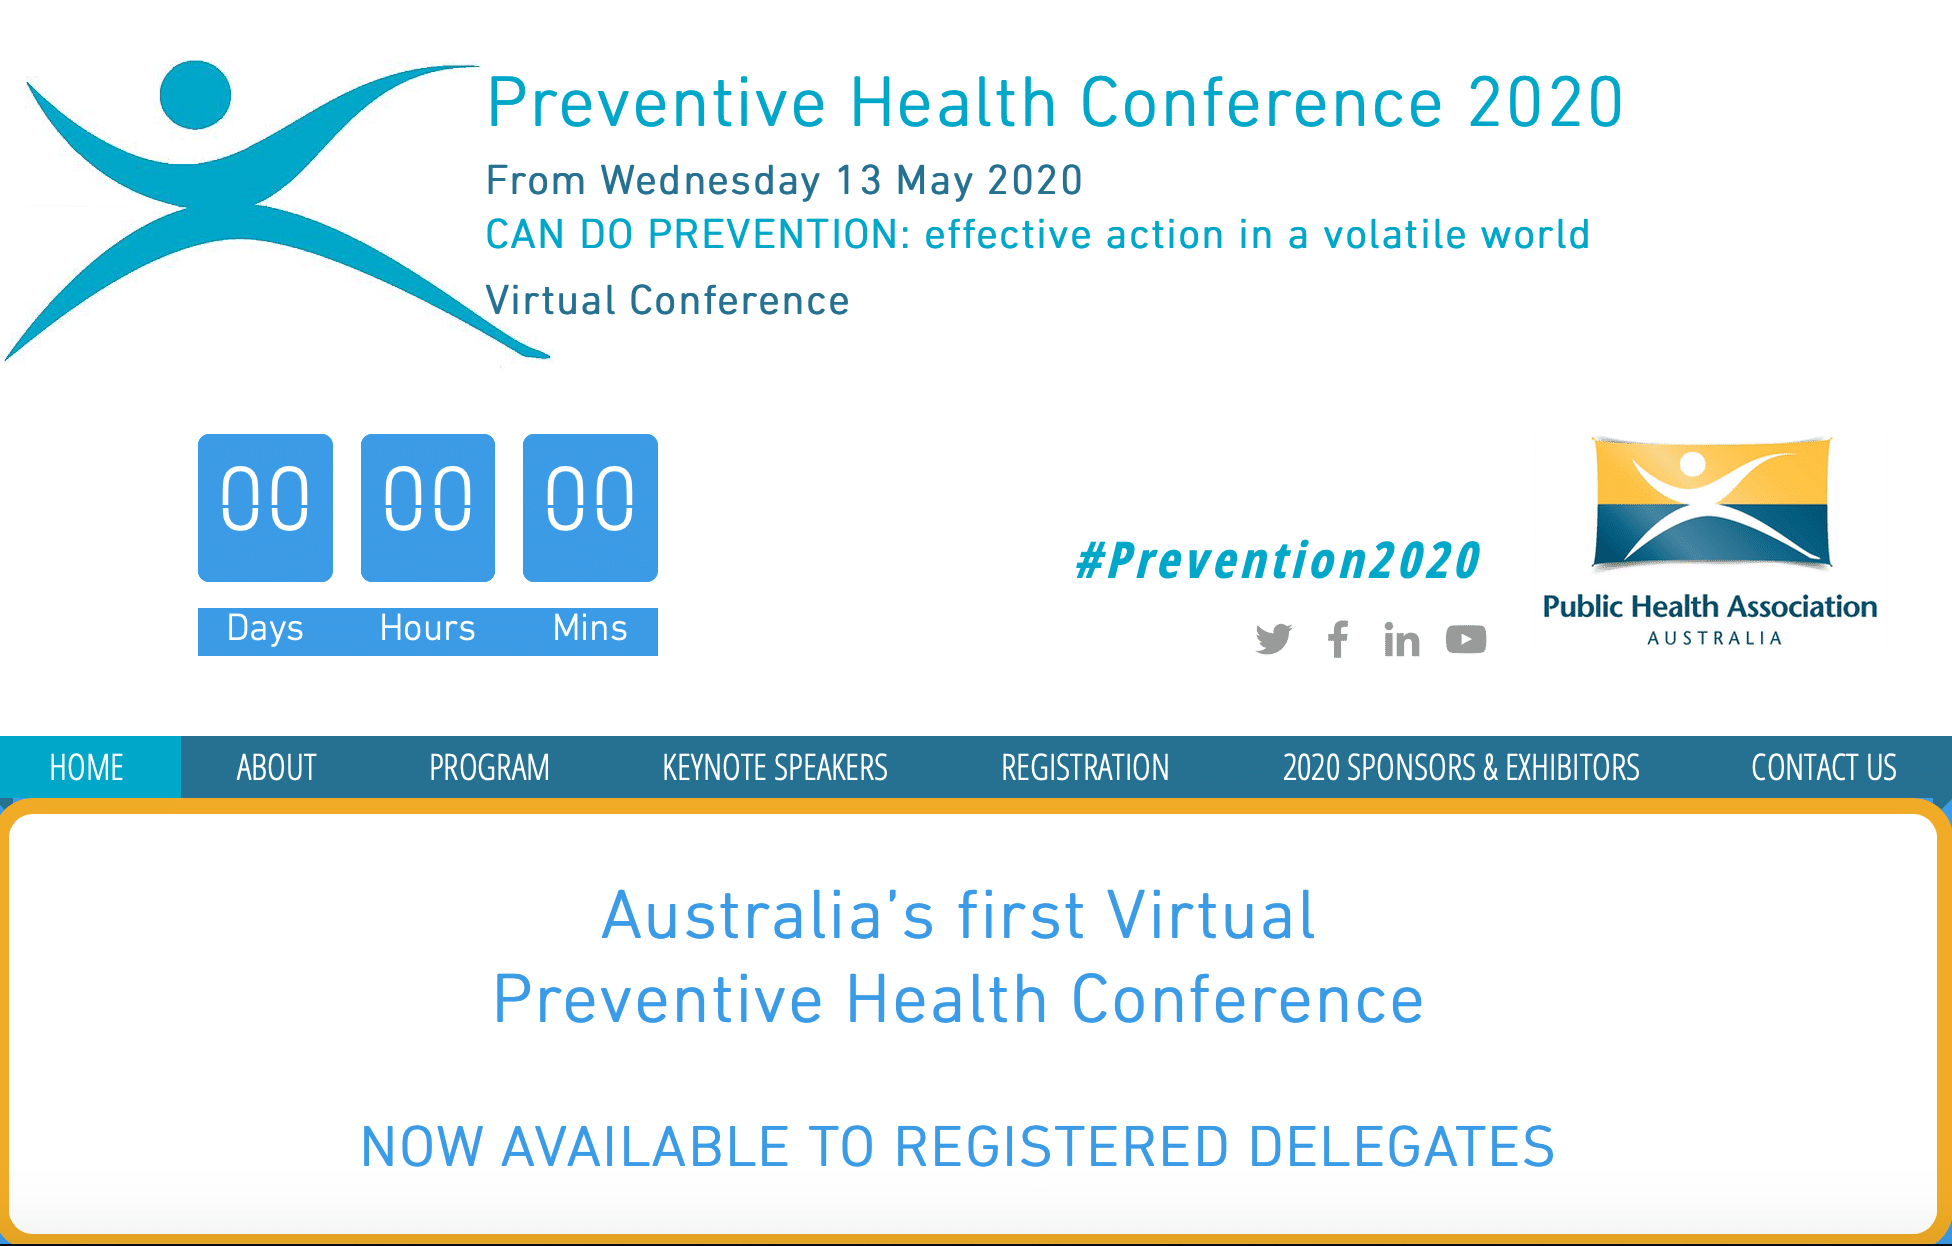 #Prevention2020 virtual conference @WePublicHealth